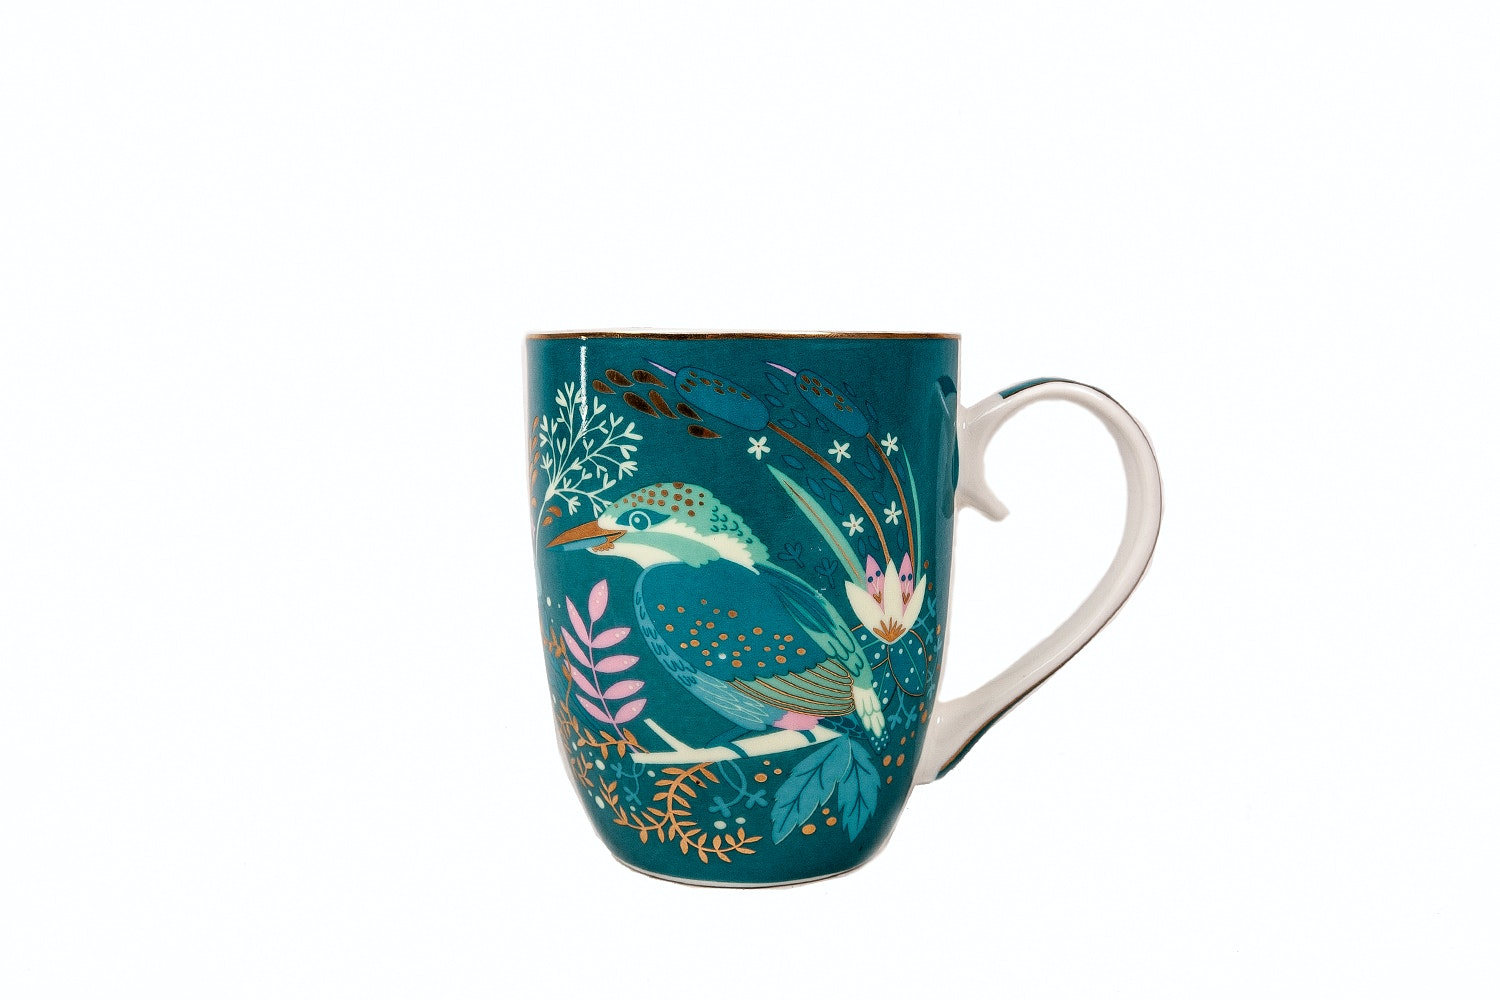 Tipperary Crystal Mug | Single | Birdy | Kingfisher